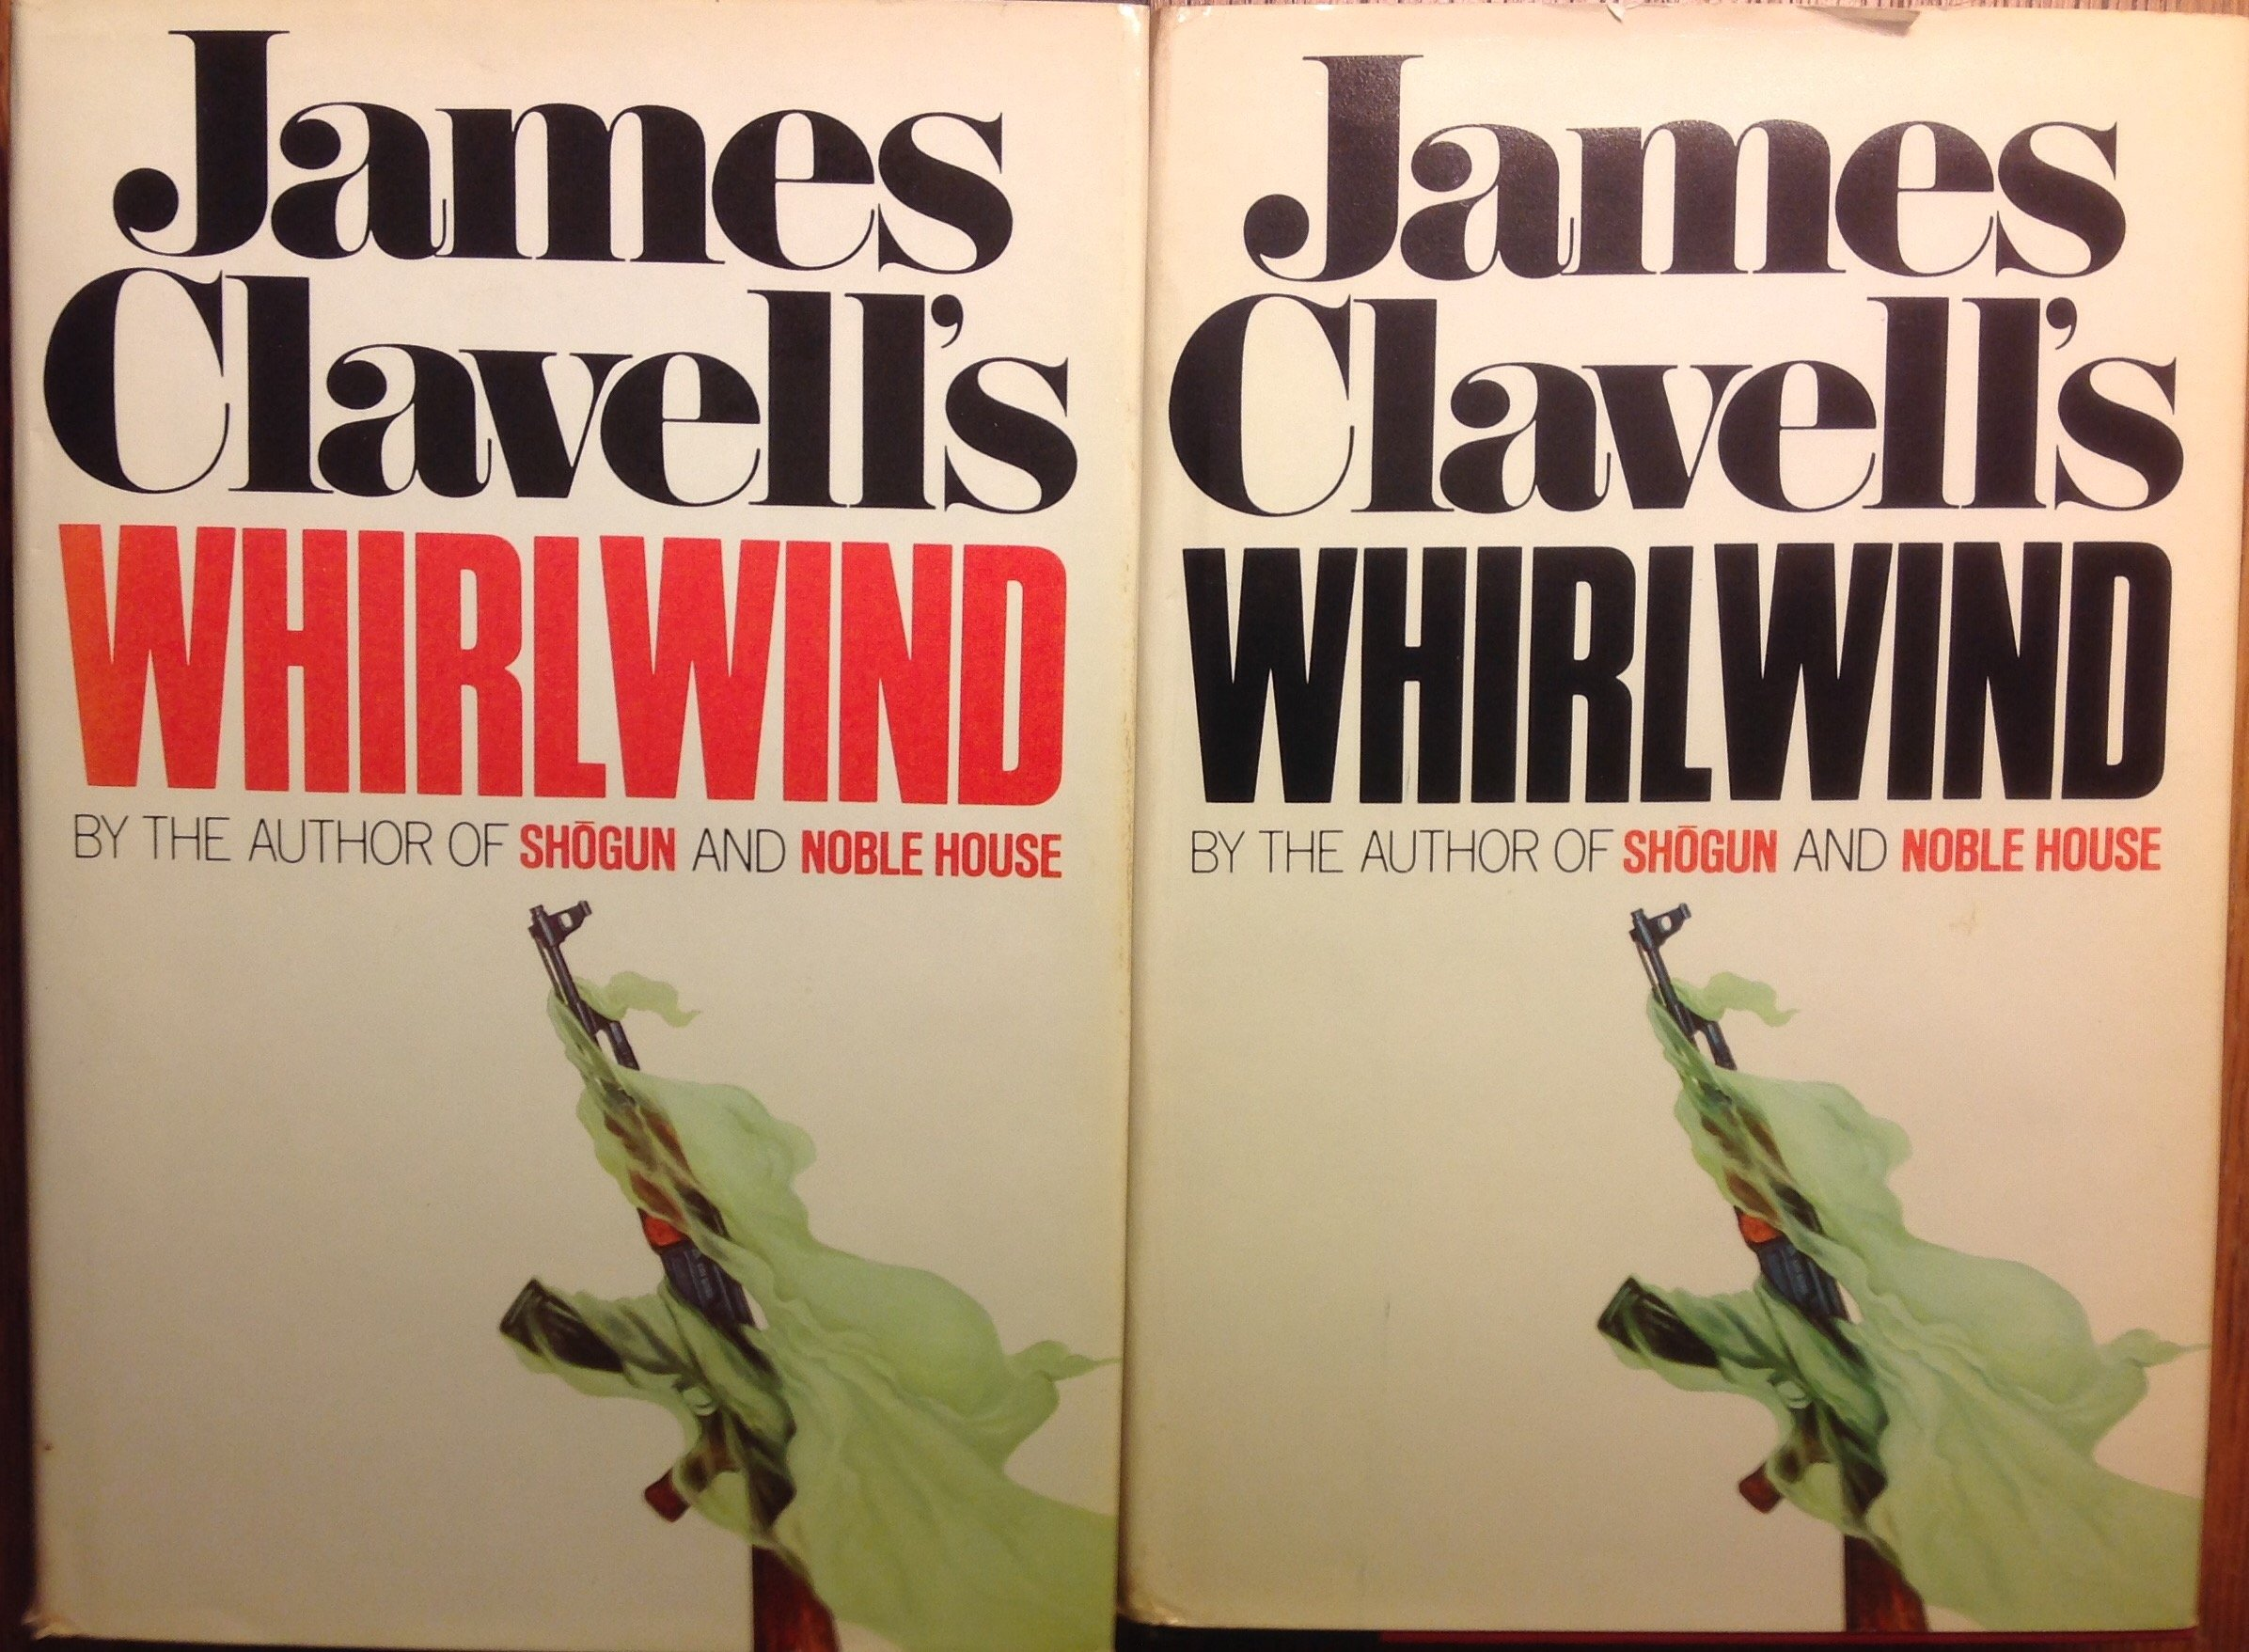 2 Books! 1) Whirlwind Volume 1 2) Whirlwind Volume 2, James Clavell